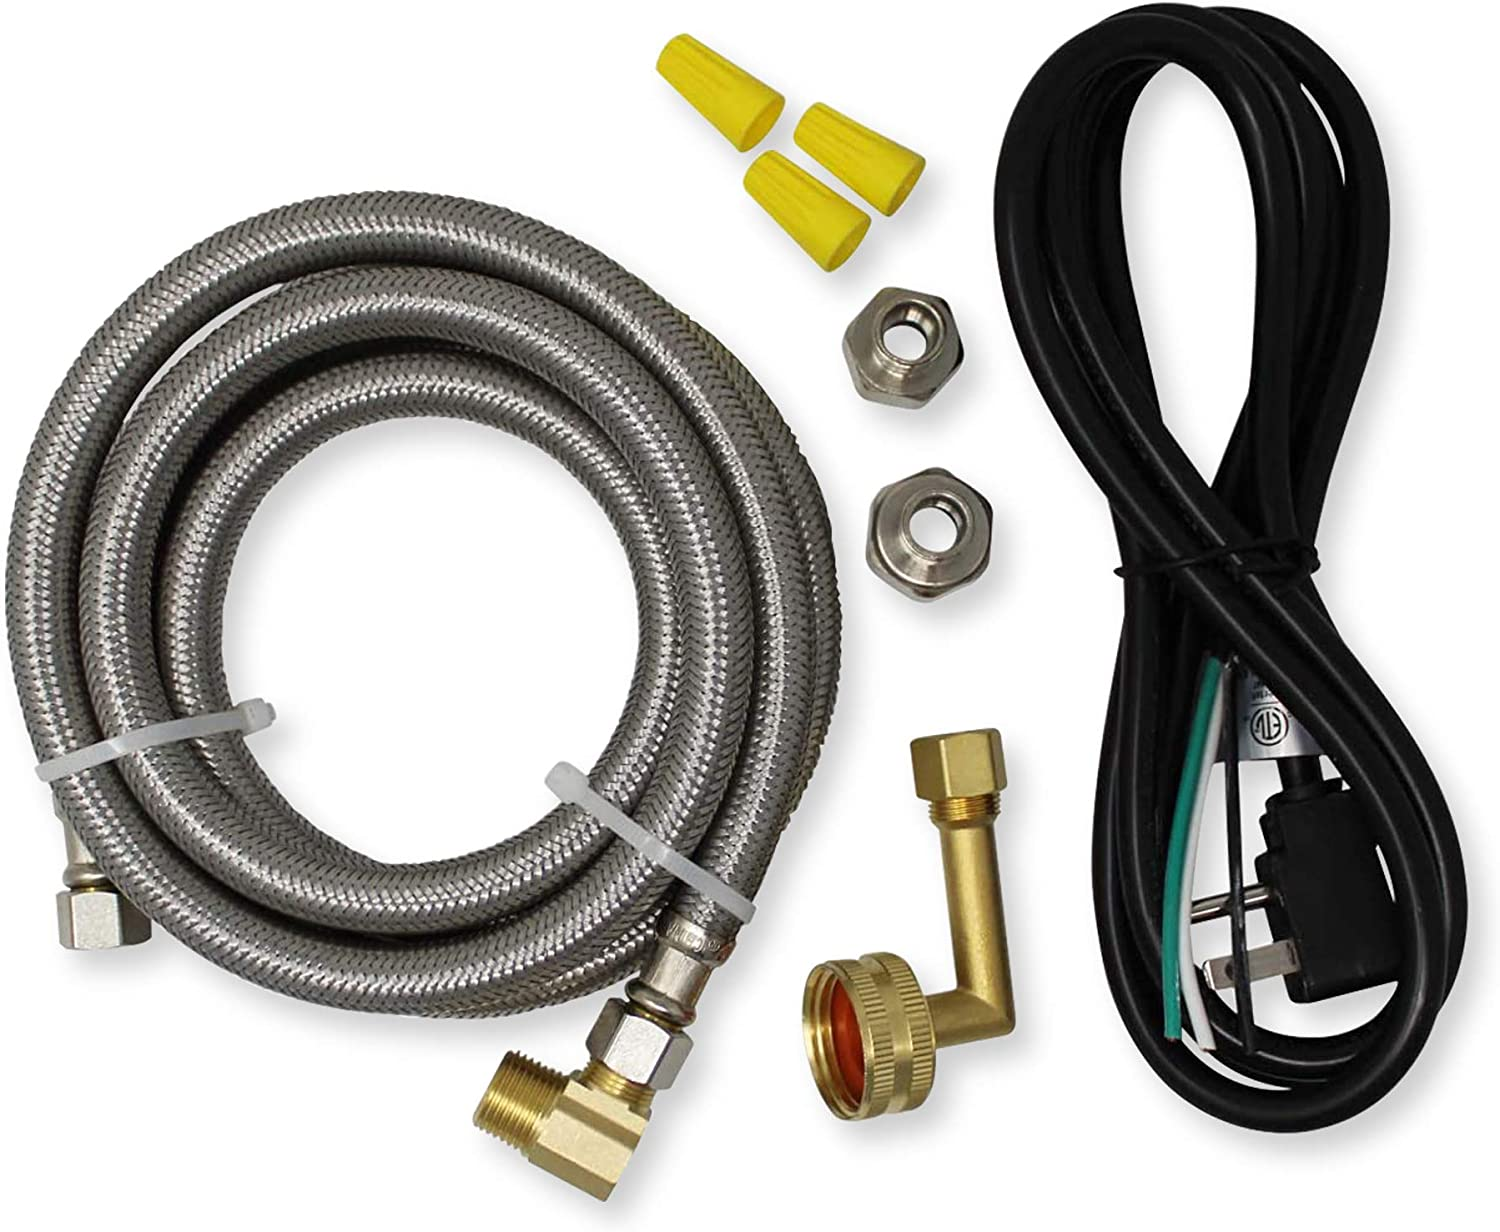 Appliance Pros Universal Dishwasher Kit Max 69% OFF PM28X329 Installation Co A surprise price is realized